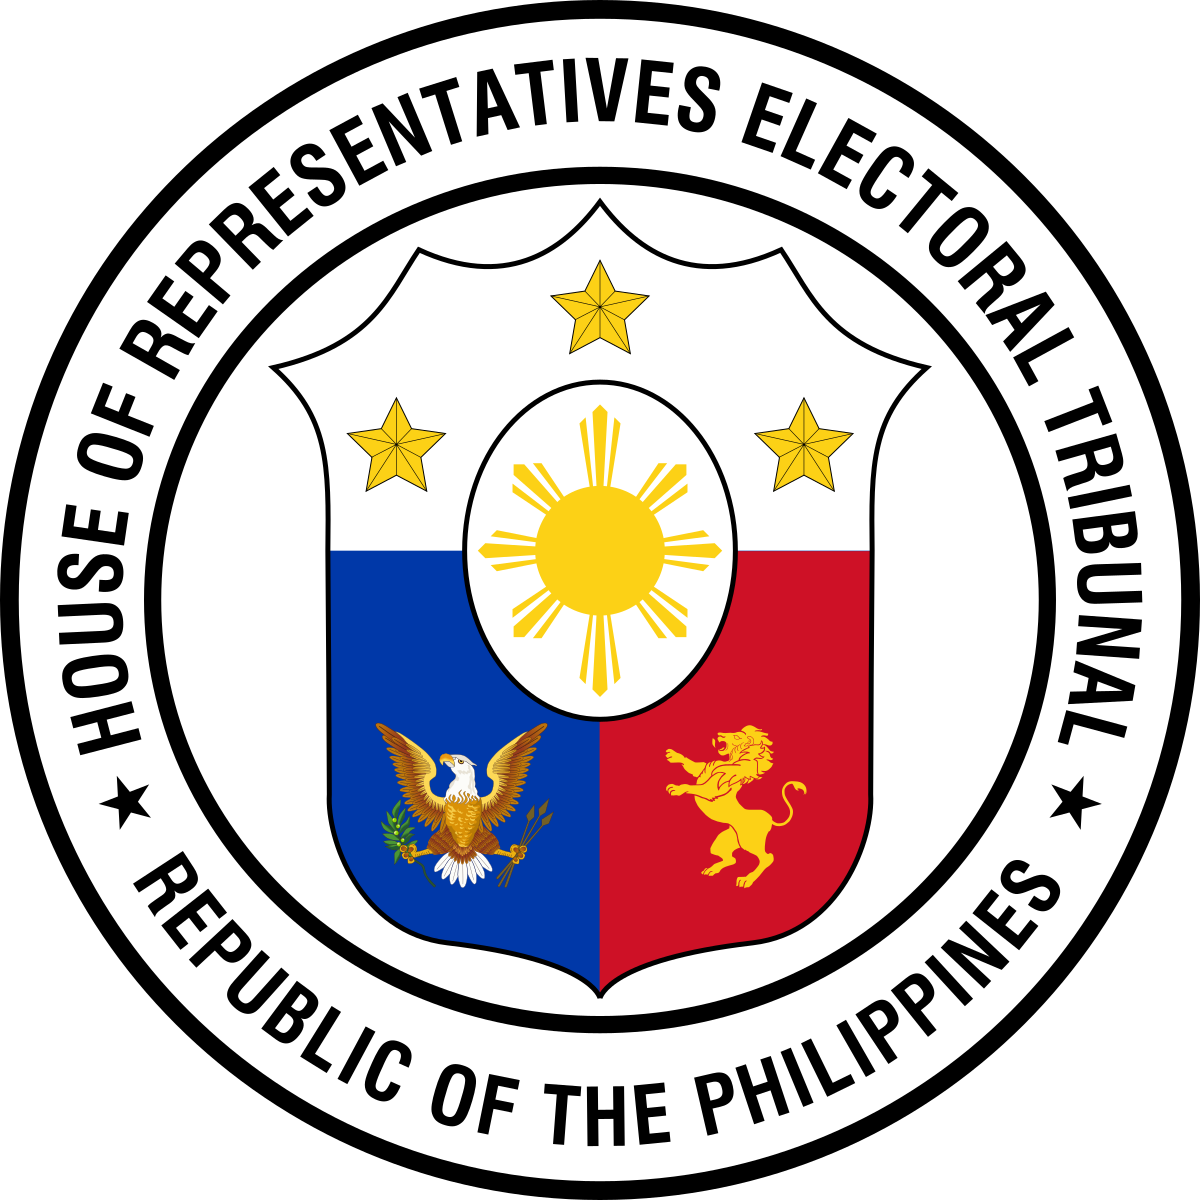 House of representatives building clipart svg royalty free House of Representatives Electoral Tribunal - Wikipedia svg royalty free